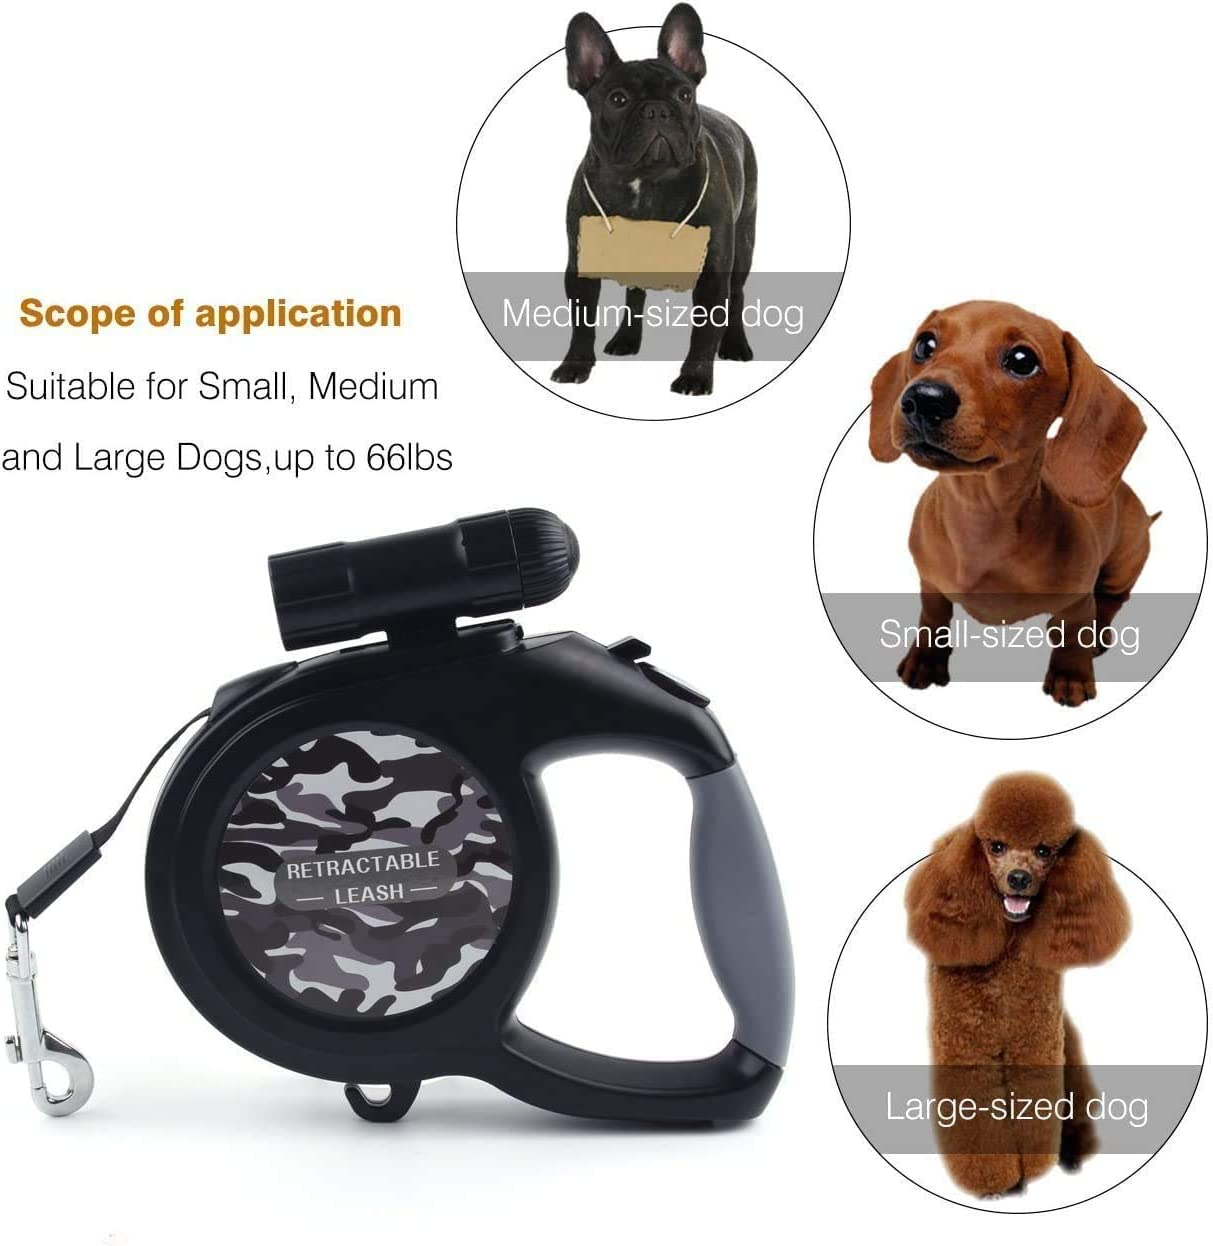 KEAIDUO Dog Leash Retractable Running Training Jogging ect Retractable Leads for Samll Medium Large Dogs up to 110lbs Blue 50KG 8M Long Extendable Dog Lead with Led Light for Night Walking